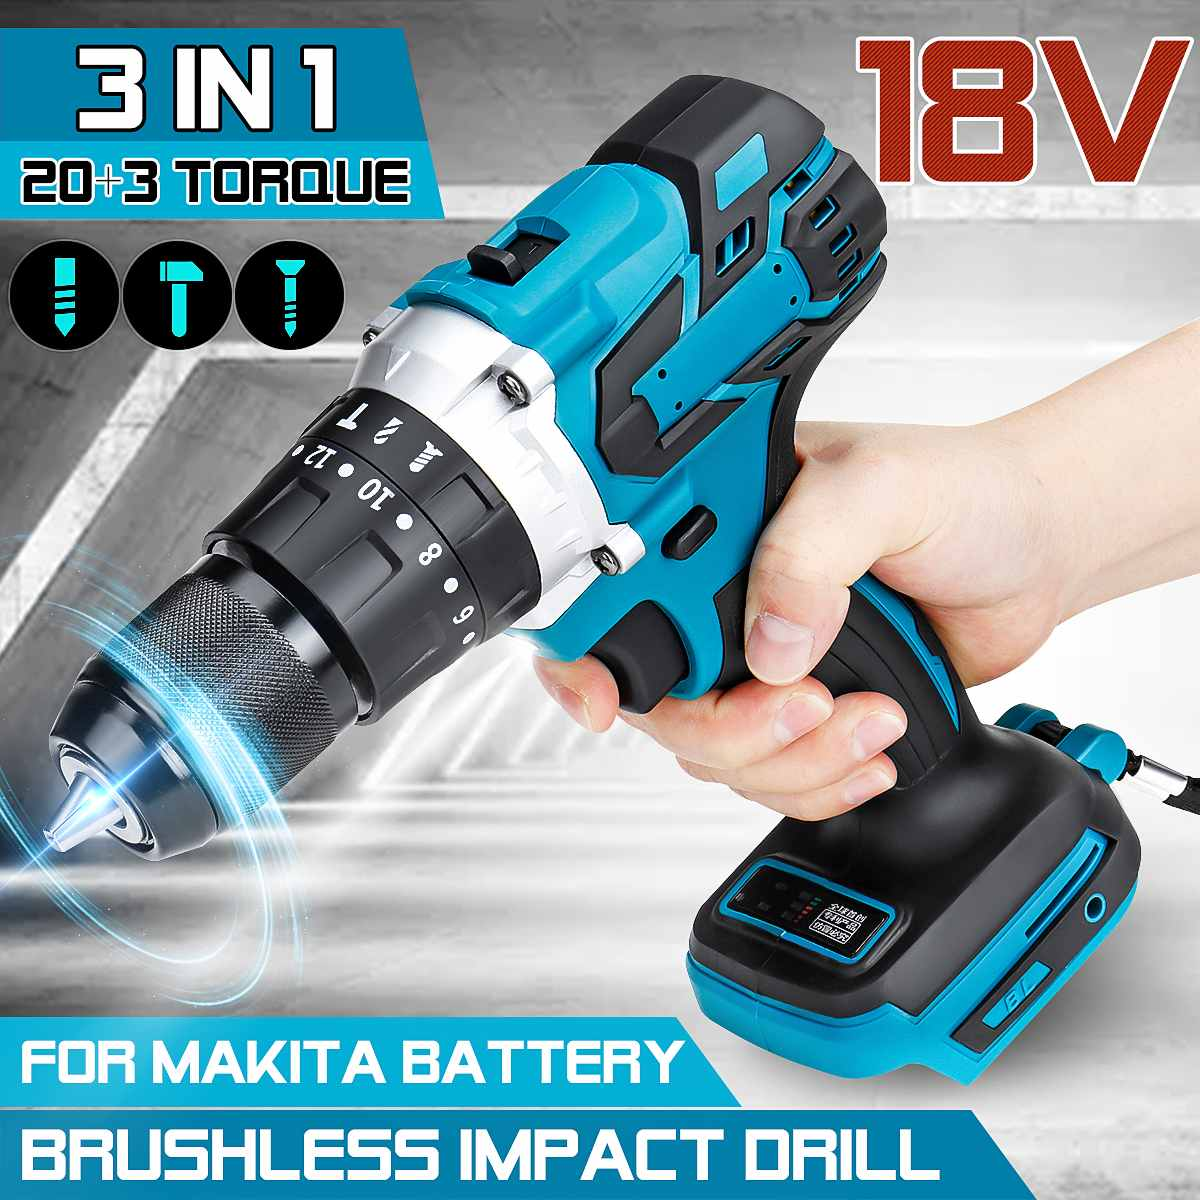 For Makita 18V Battery 3 in 1 Brushless Electric Hammer Drill Electric Screwdriver 13mm 20+3 Torque Cordless Impact Drill Electric Drills    - AliExpress